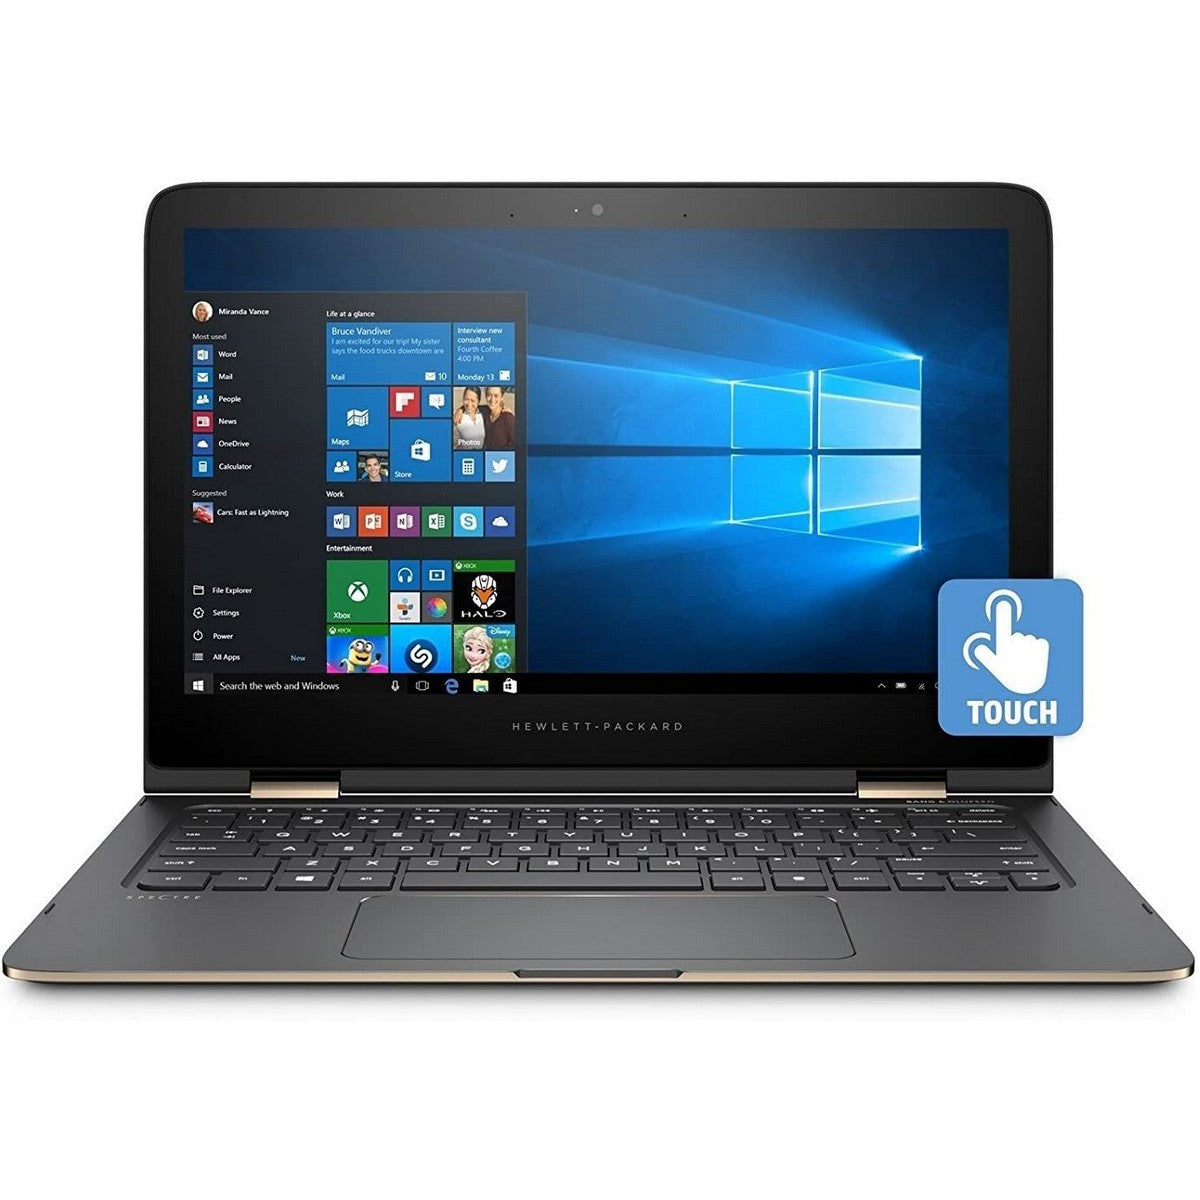 HP Spectre 13 X360 2 in 1 Laptop 13.3'' FHD IPS , Intel Core i7 i7-1065G7 1.3 GHz up to 3.9 GHz 8 MB cache, 16GB RAM, Intel Iris Plus GPU, 1TB SSD, Touchscreen, Windows 10, English Keyboard, Black NIGHT